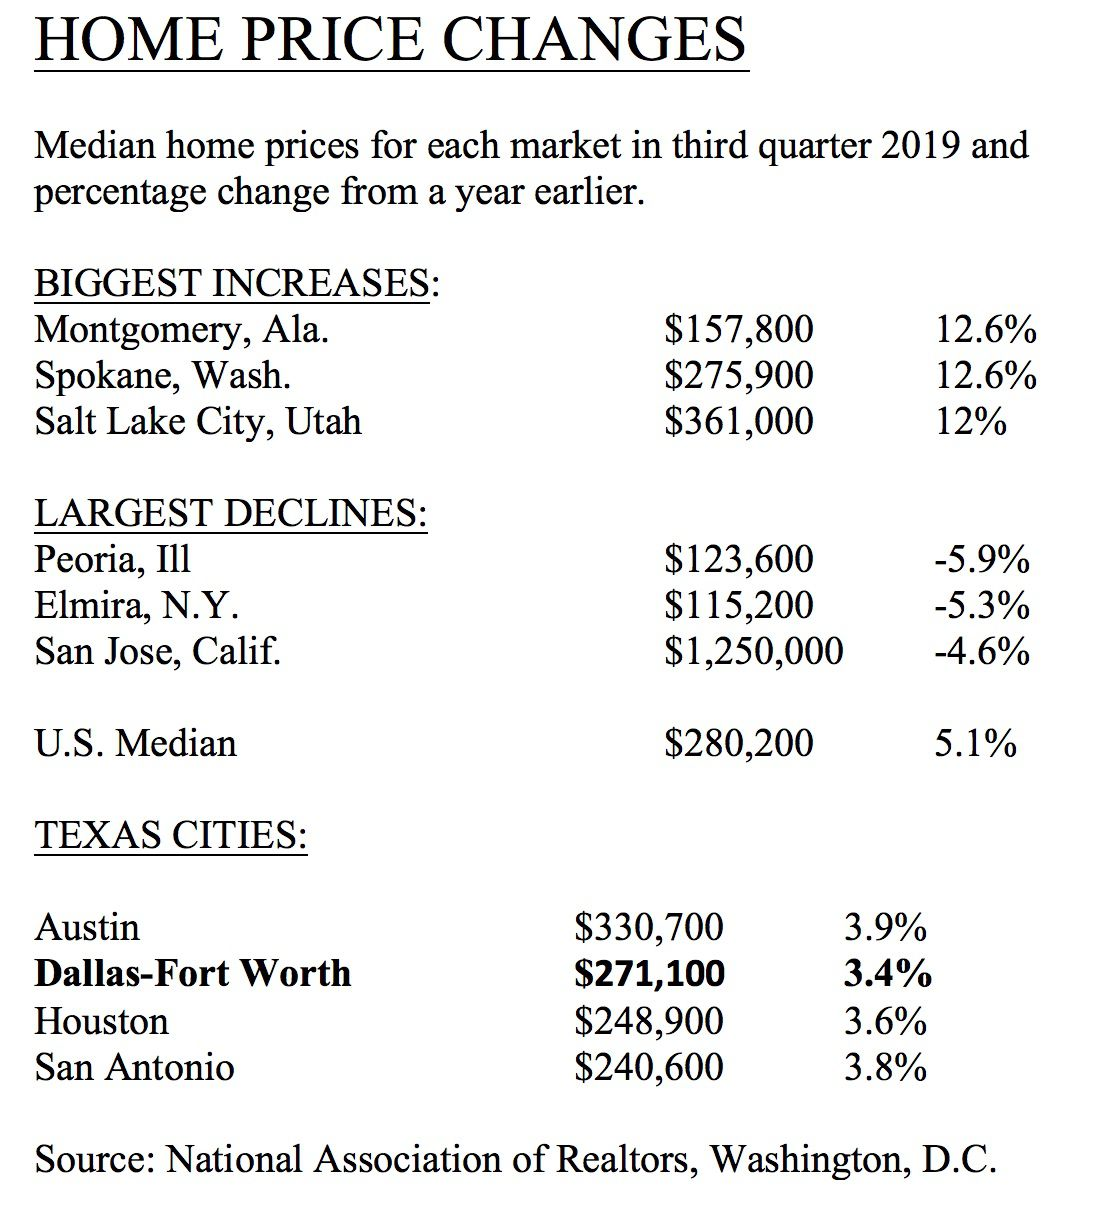 Prices were higher in more than 90% of U. S. markets.